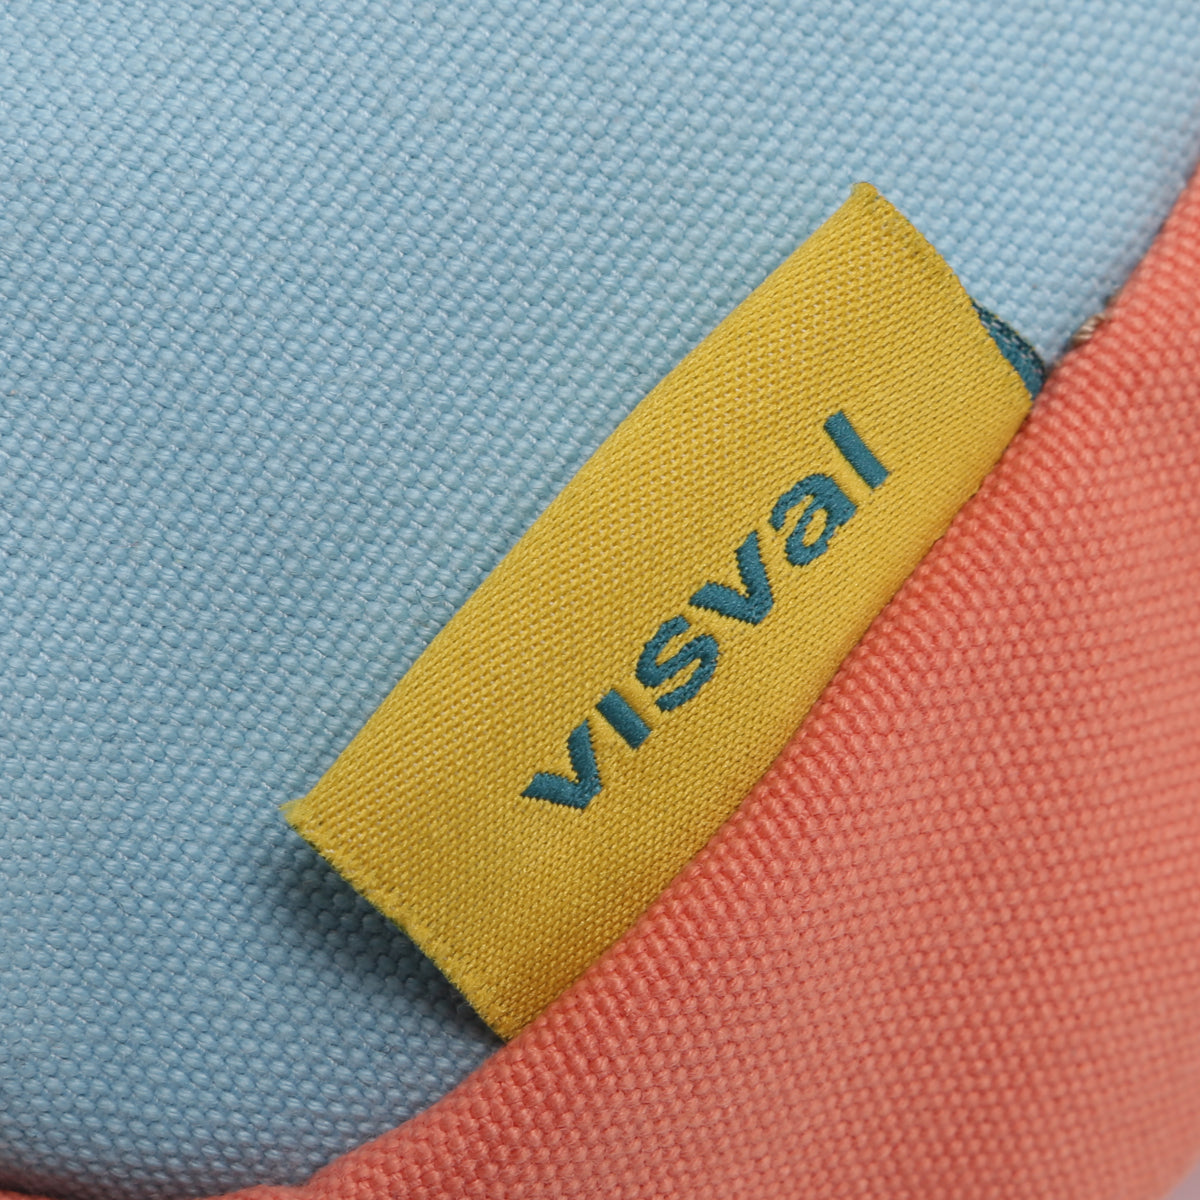 [COLLABS] Waist Bag VISVAL x Indy Ratna Series Light Blue